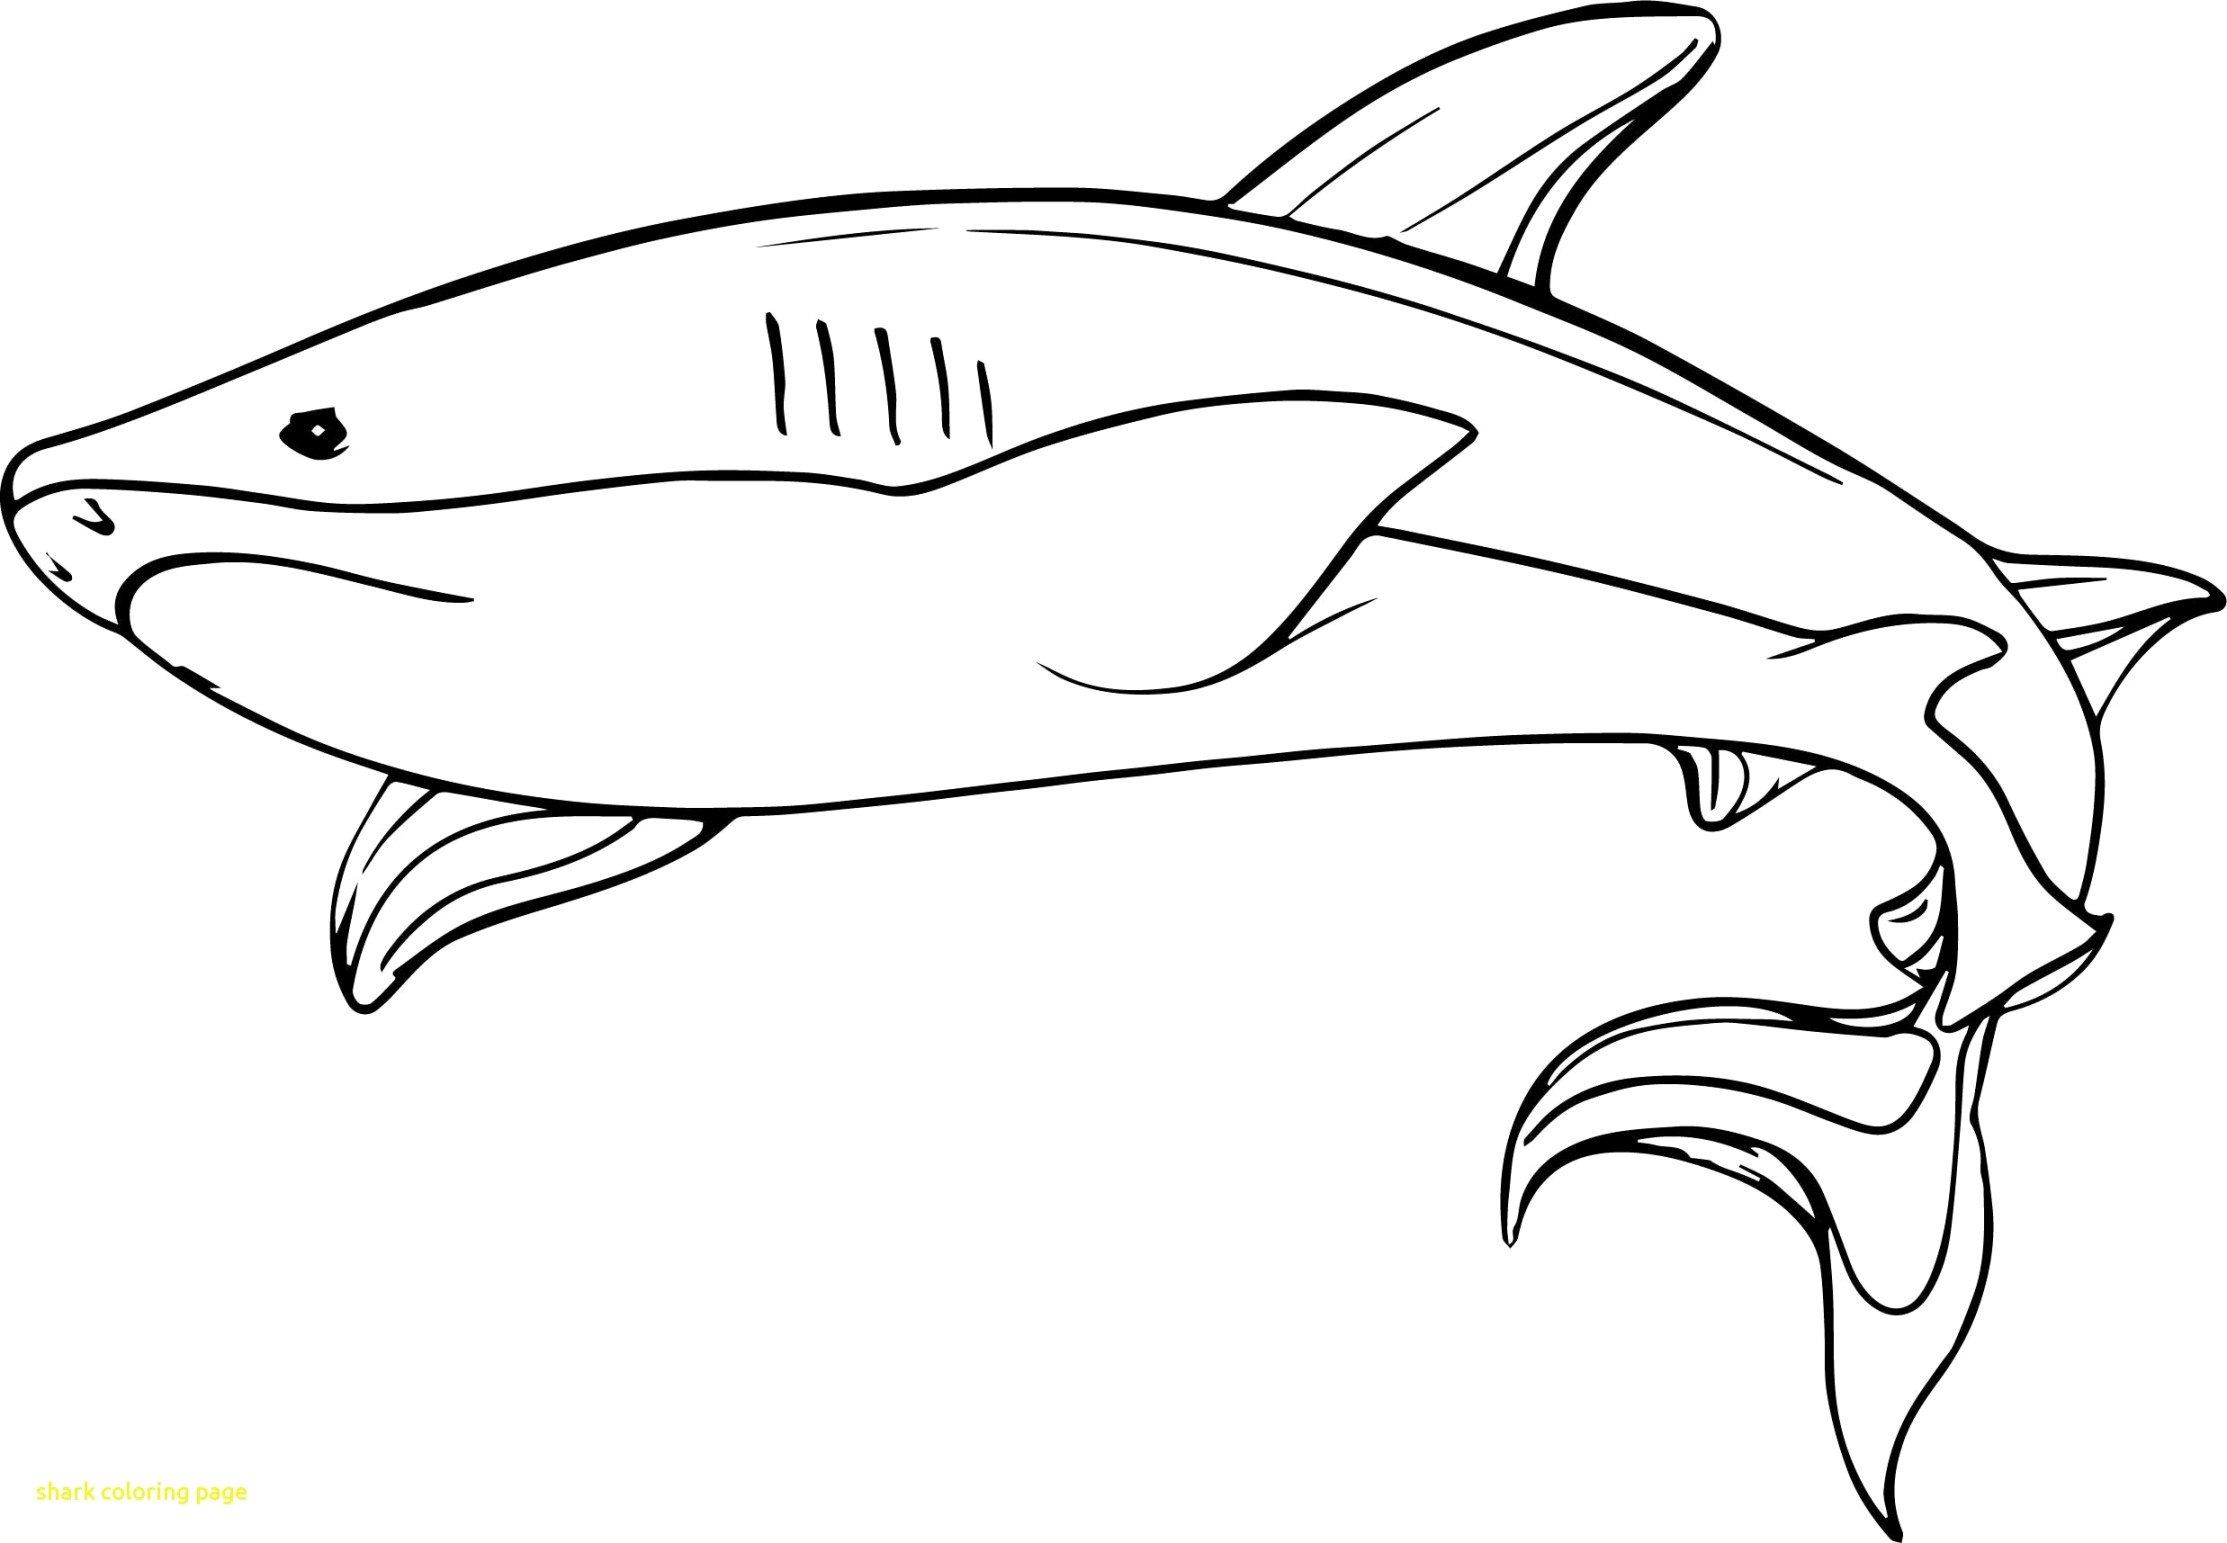 shark colouring picture shark coloring page picture colouring shark